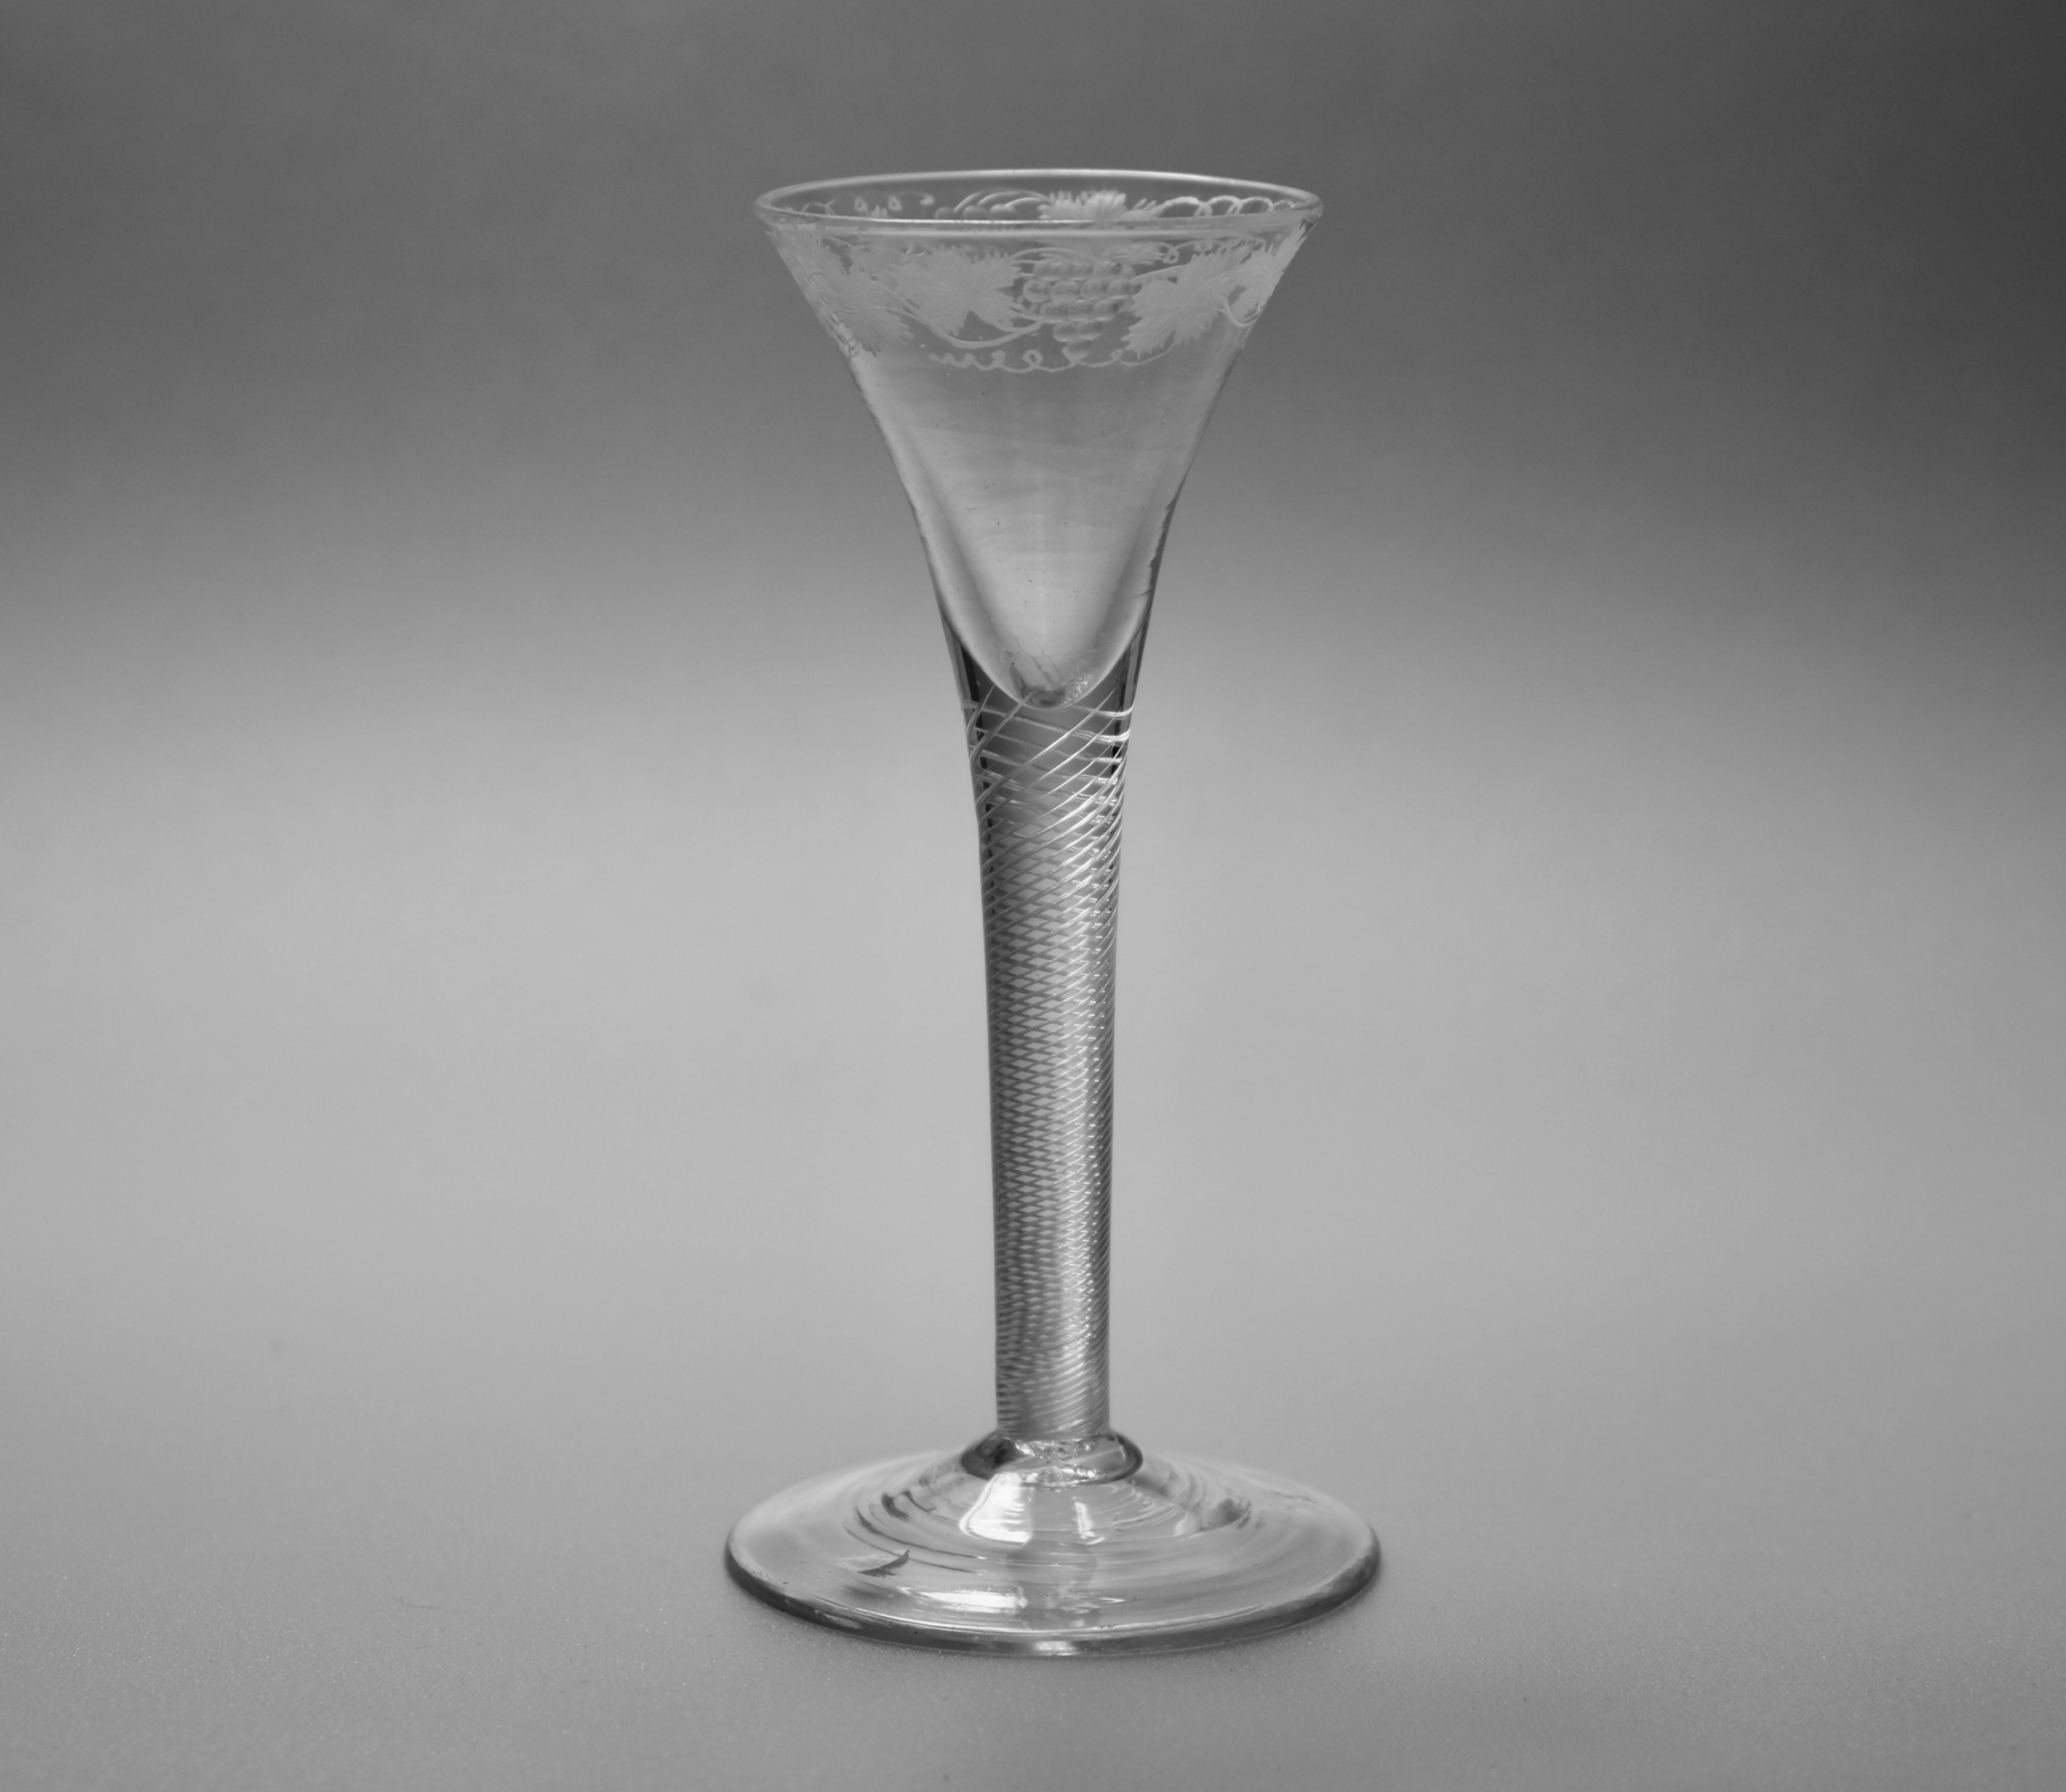 engraved air twist wine glass english c1755